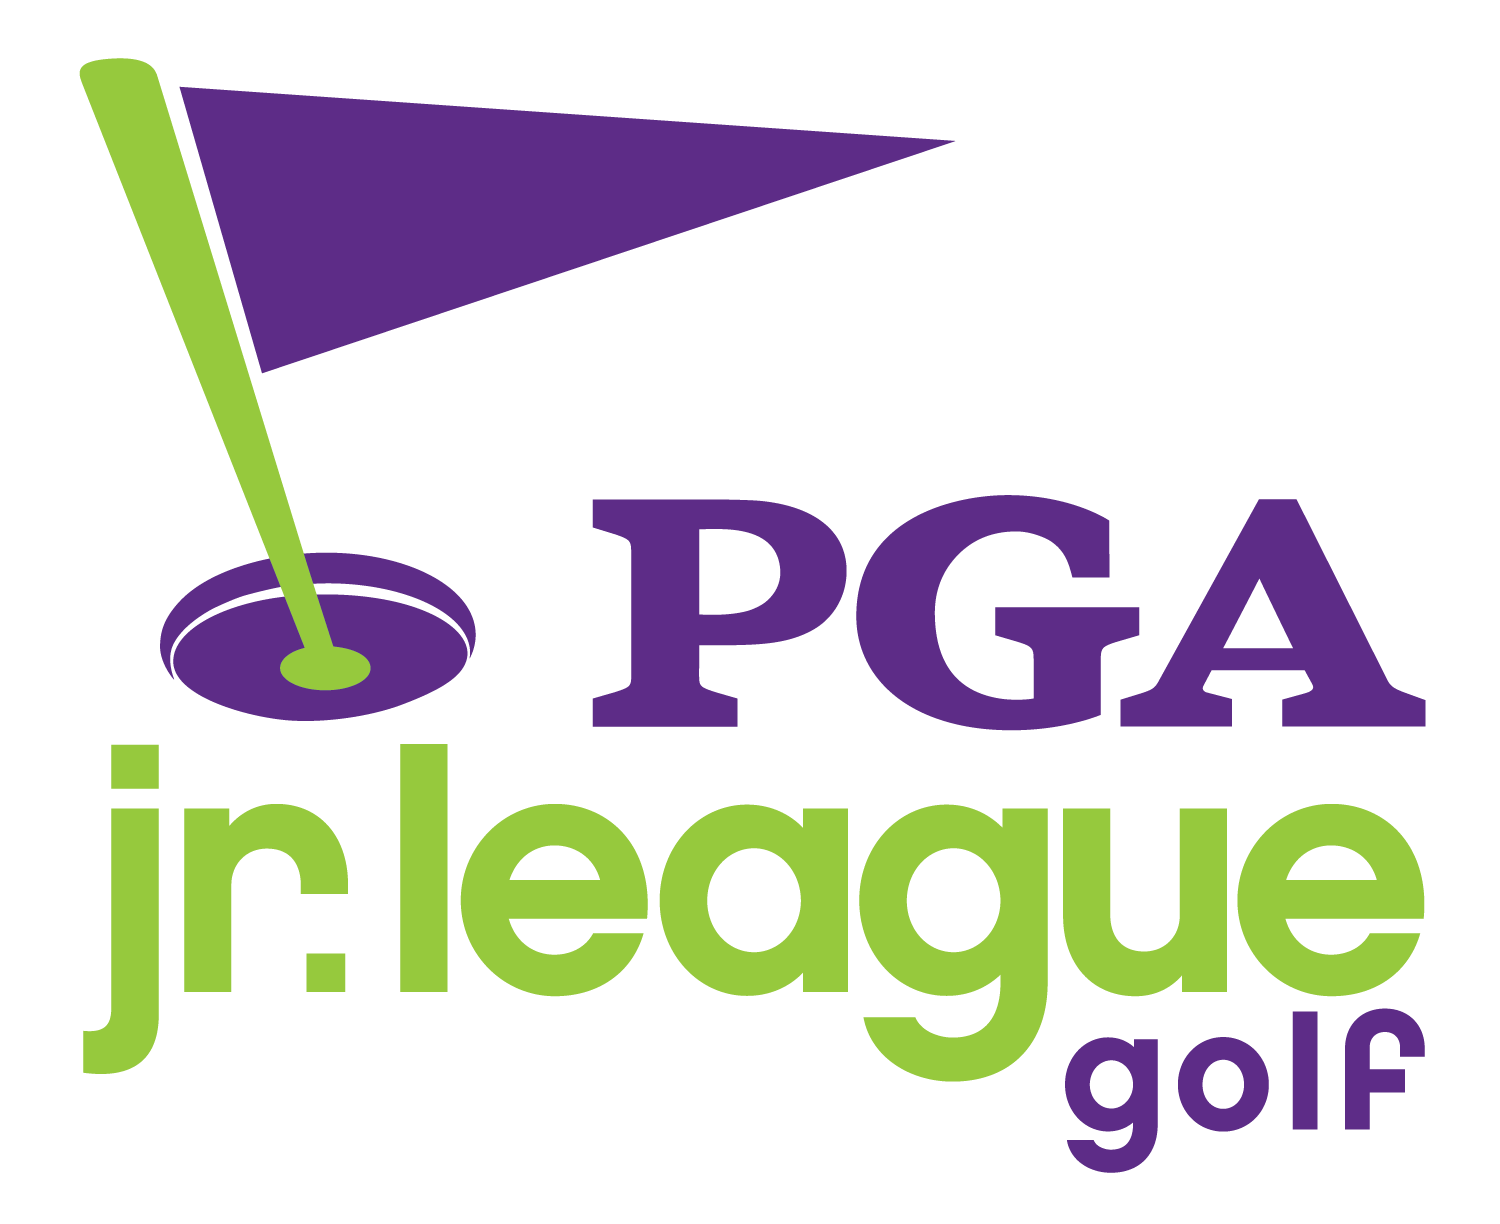 Our partners get ready. Golf clipart league